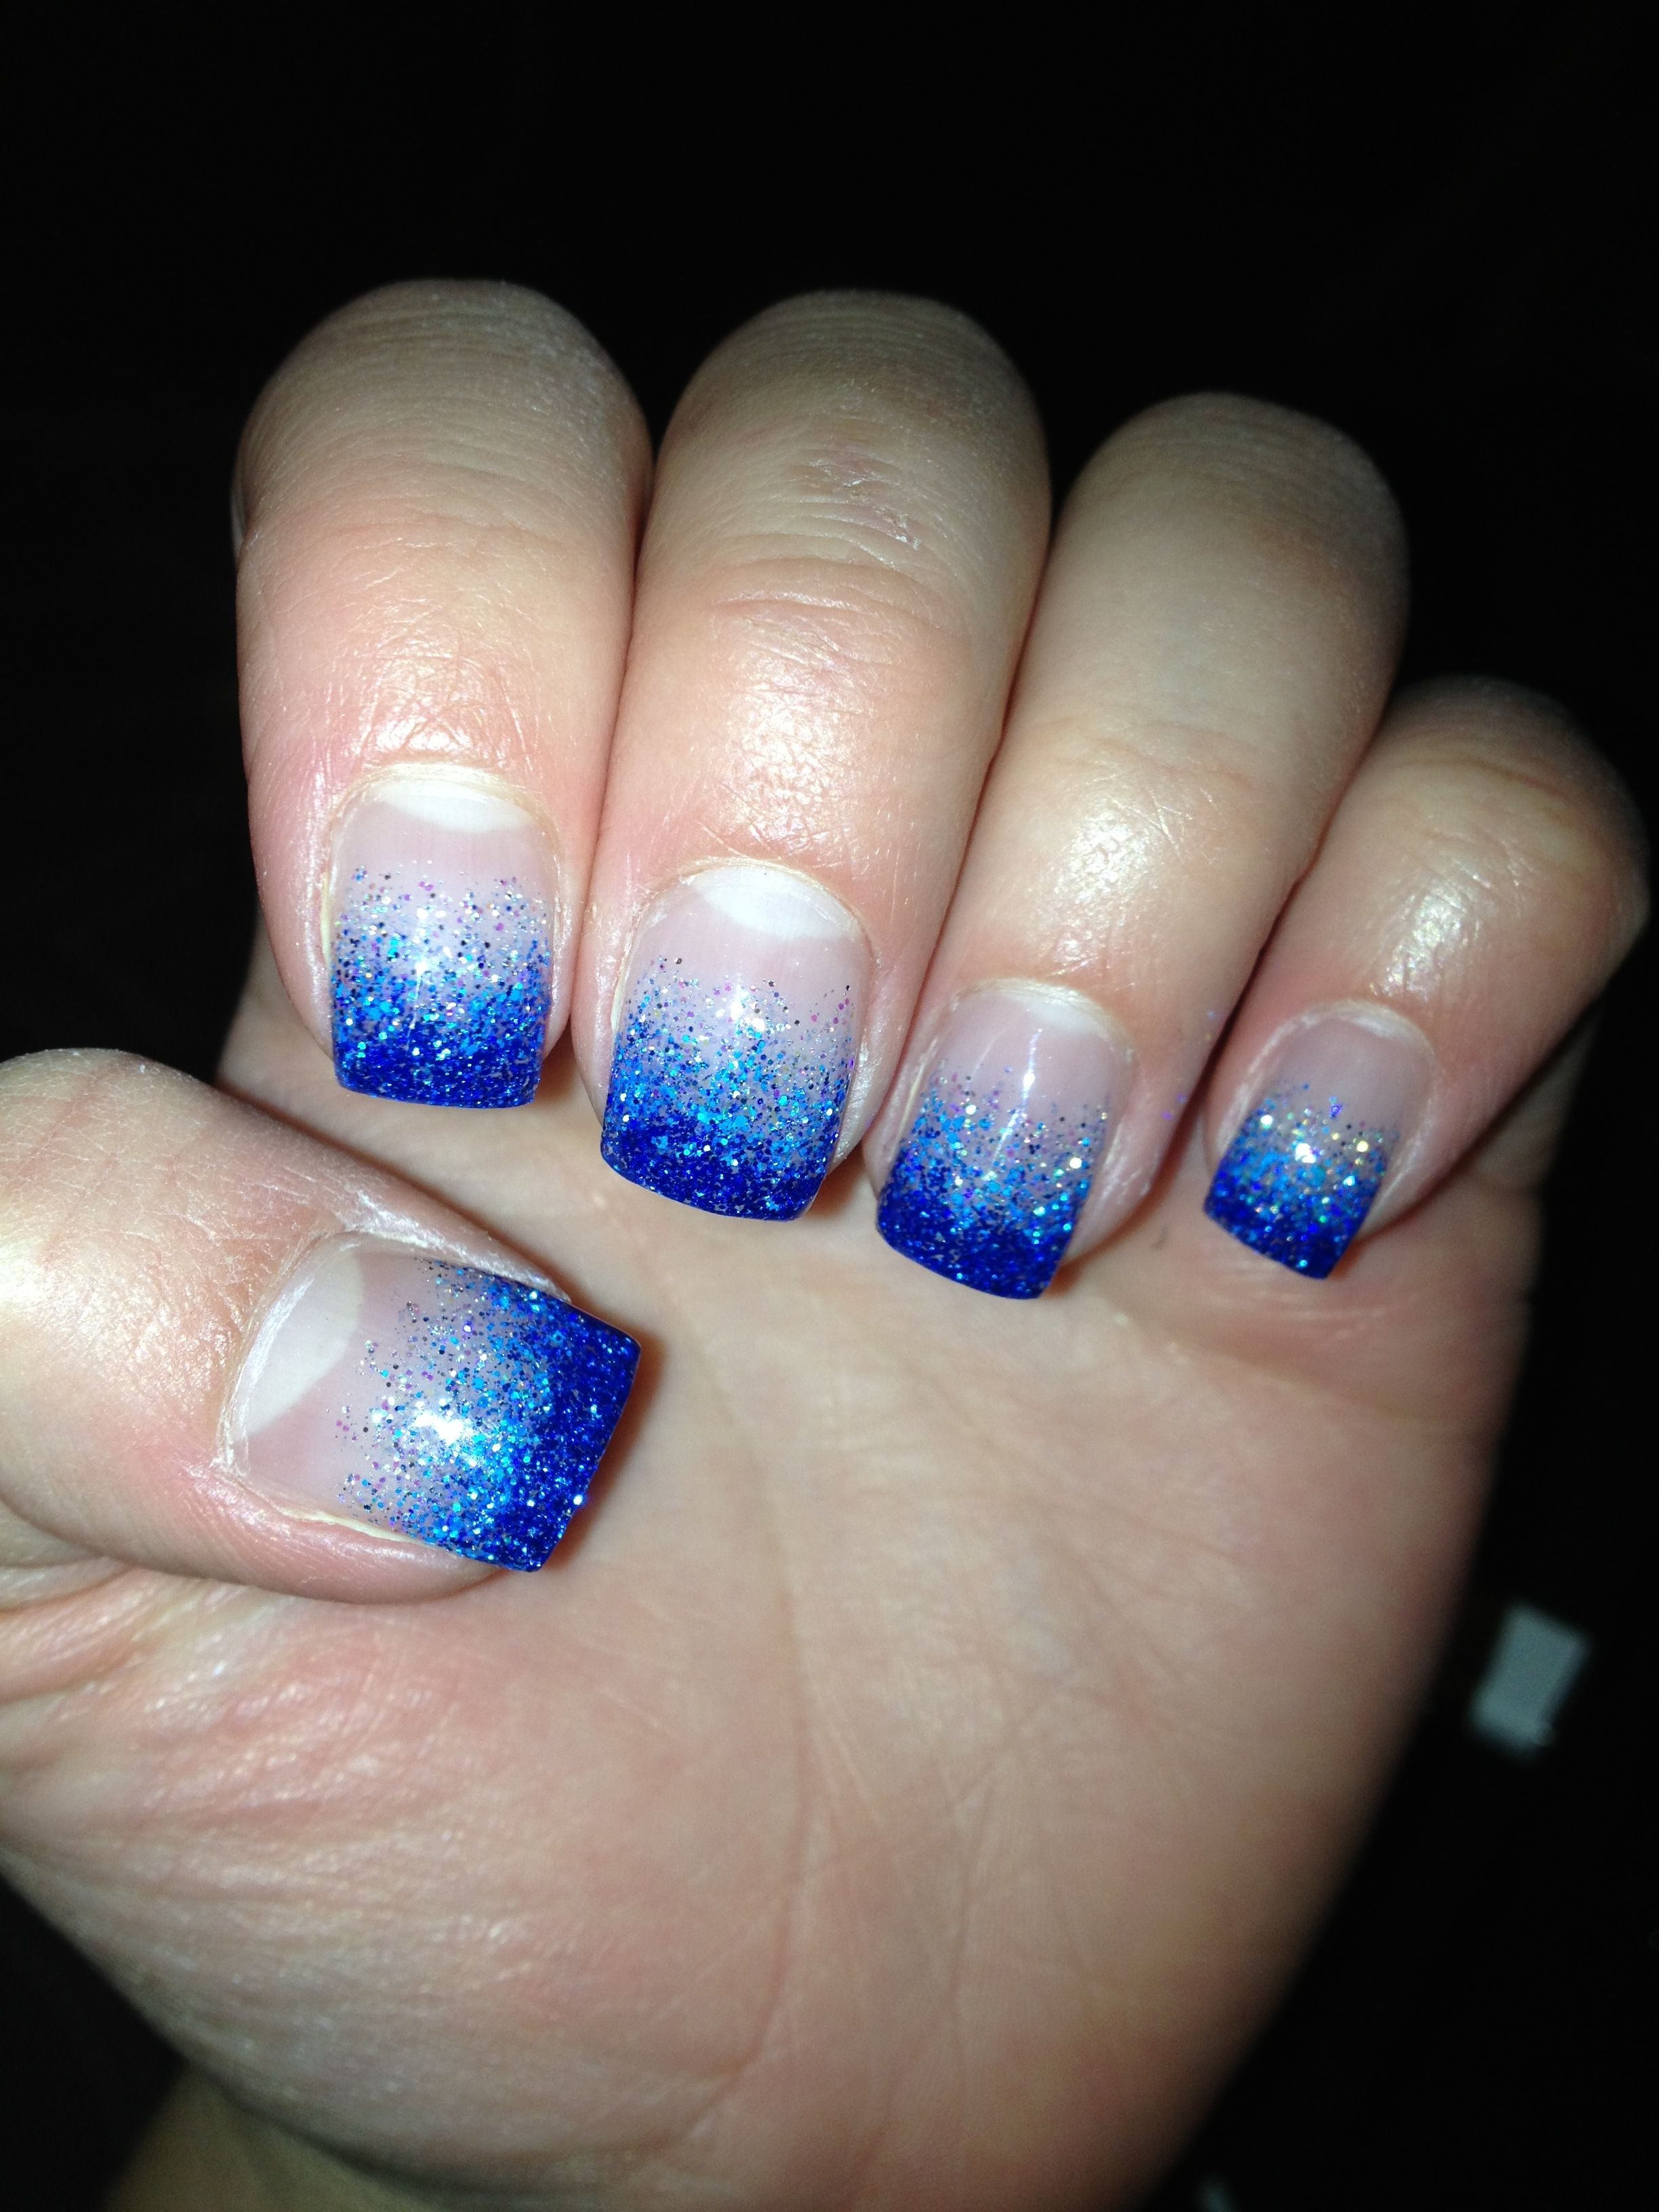 dark and light blue glitter gel nails loreholley nails